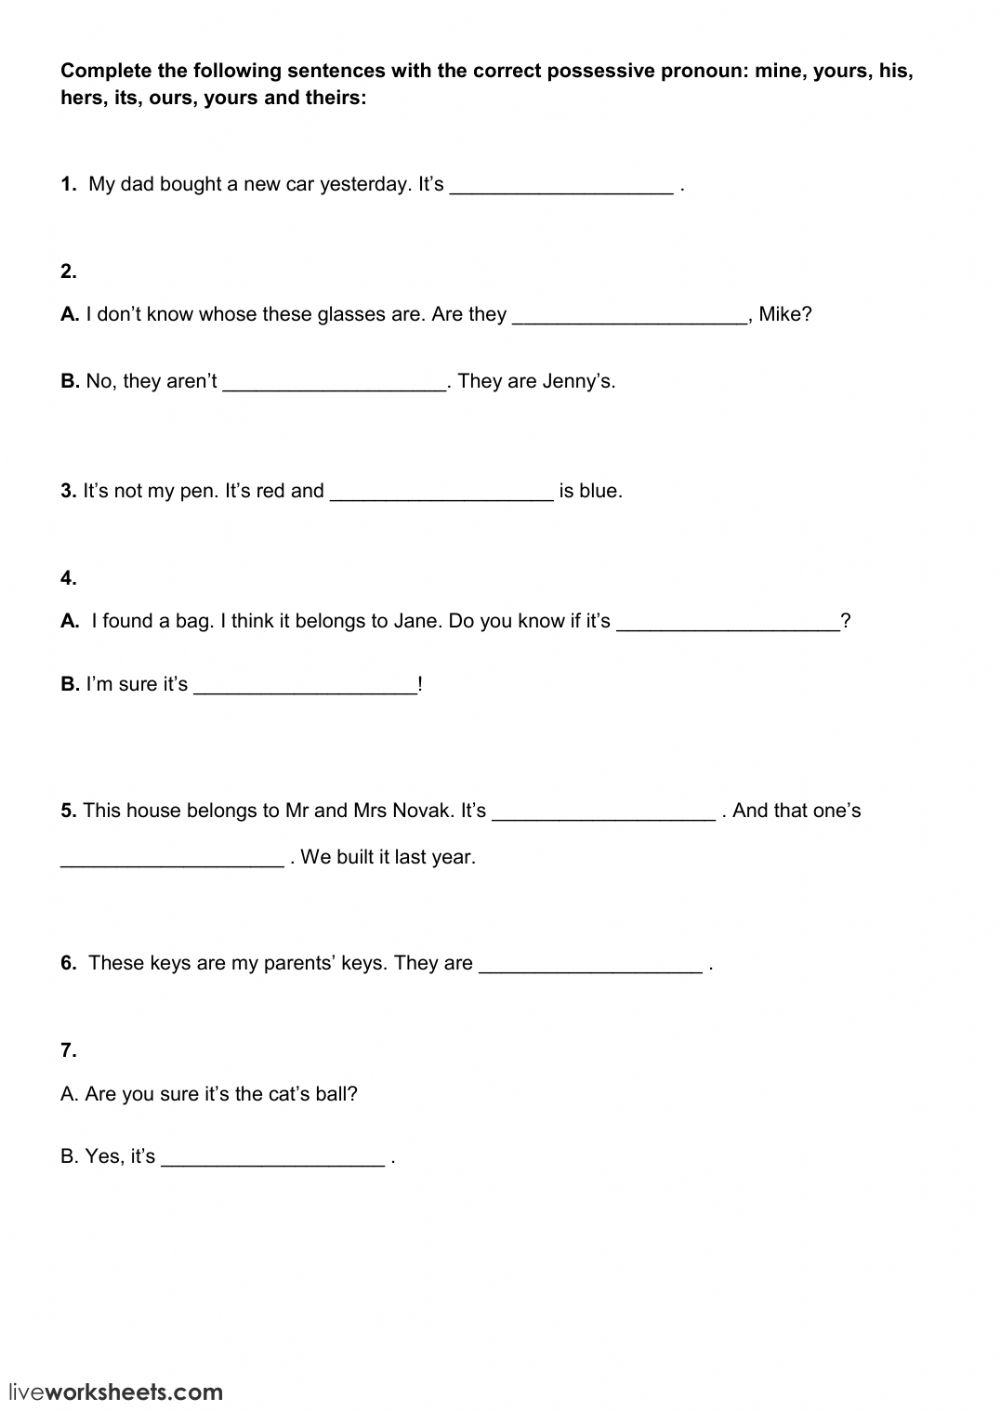 Free possessive pronouns worksheets for first grade